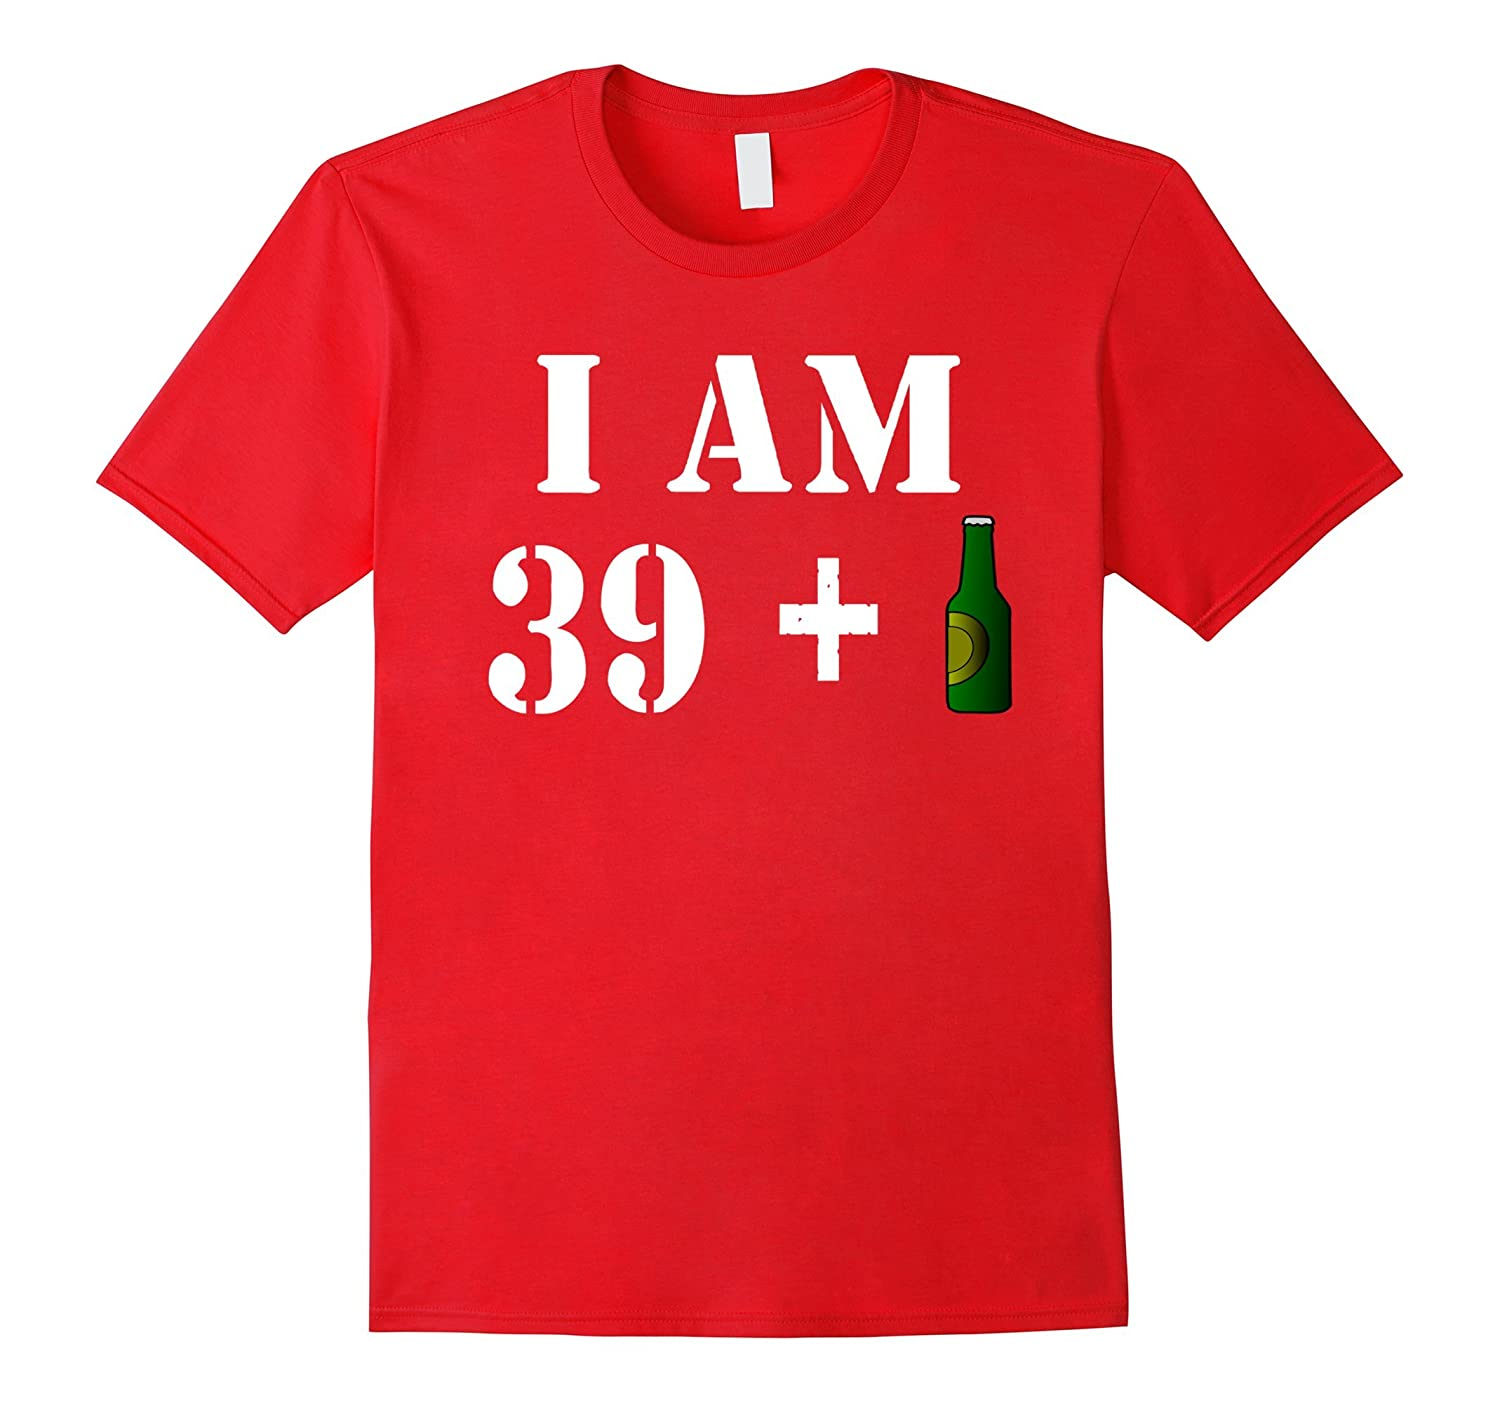 40th Birthday Gift Funny Vintage T-Shirt Idea For Beer Lover-BN